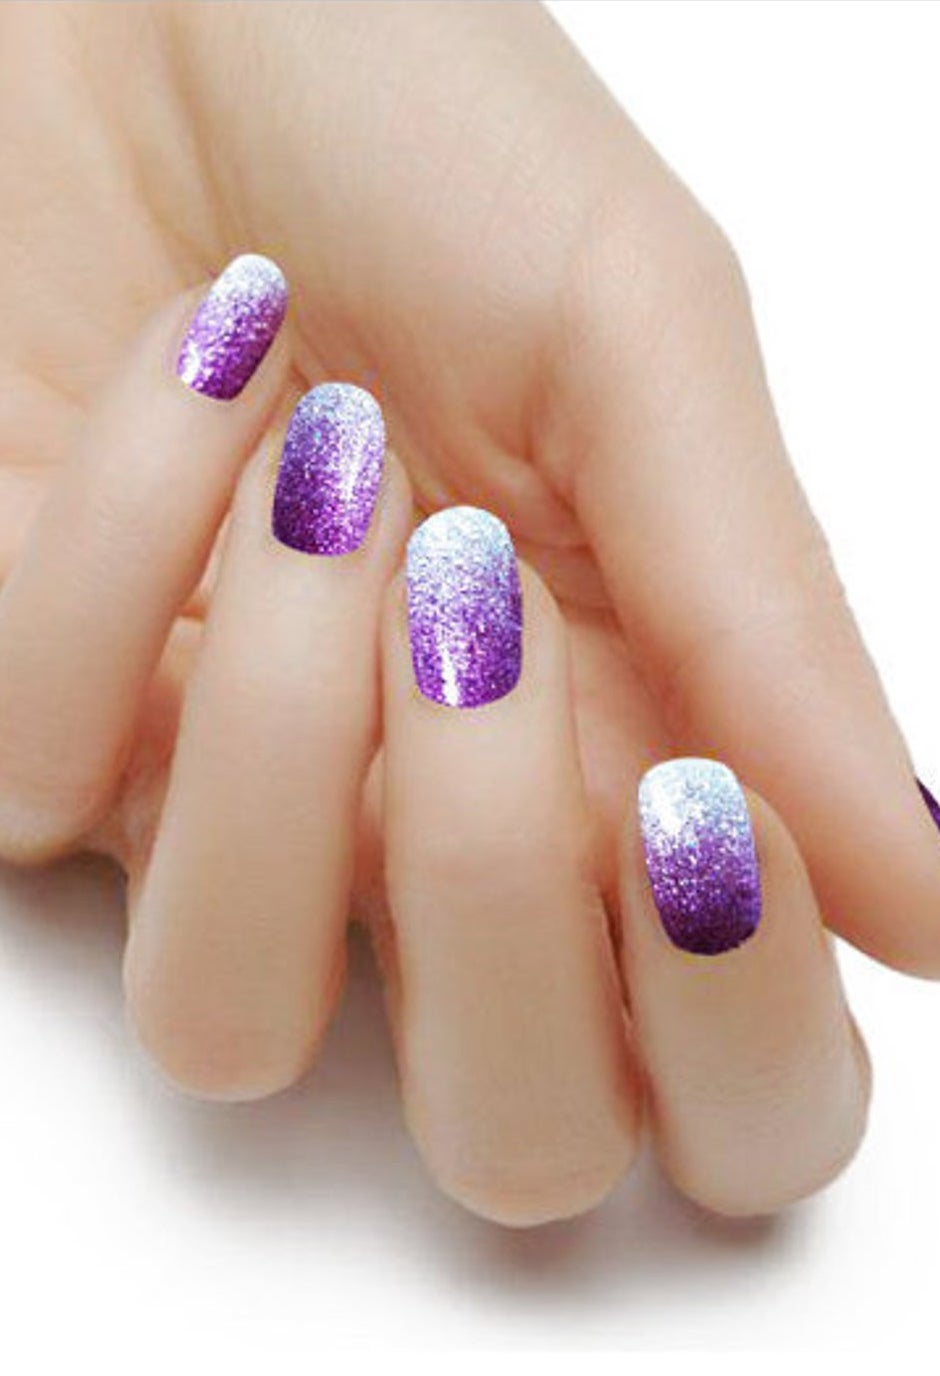 Short silver and purple nail wraps with glitter